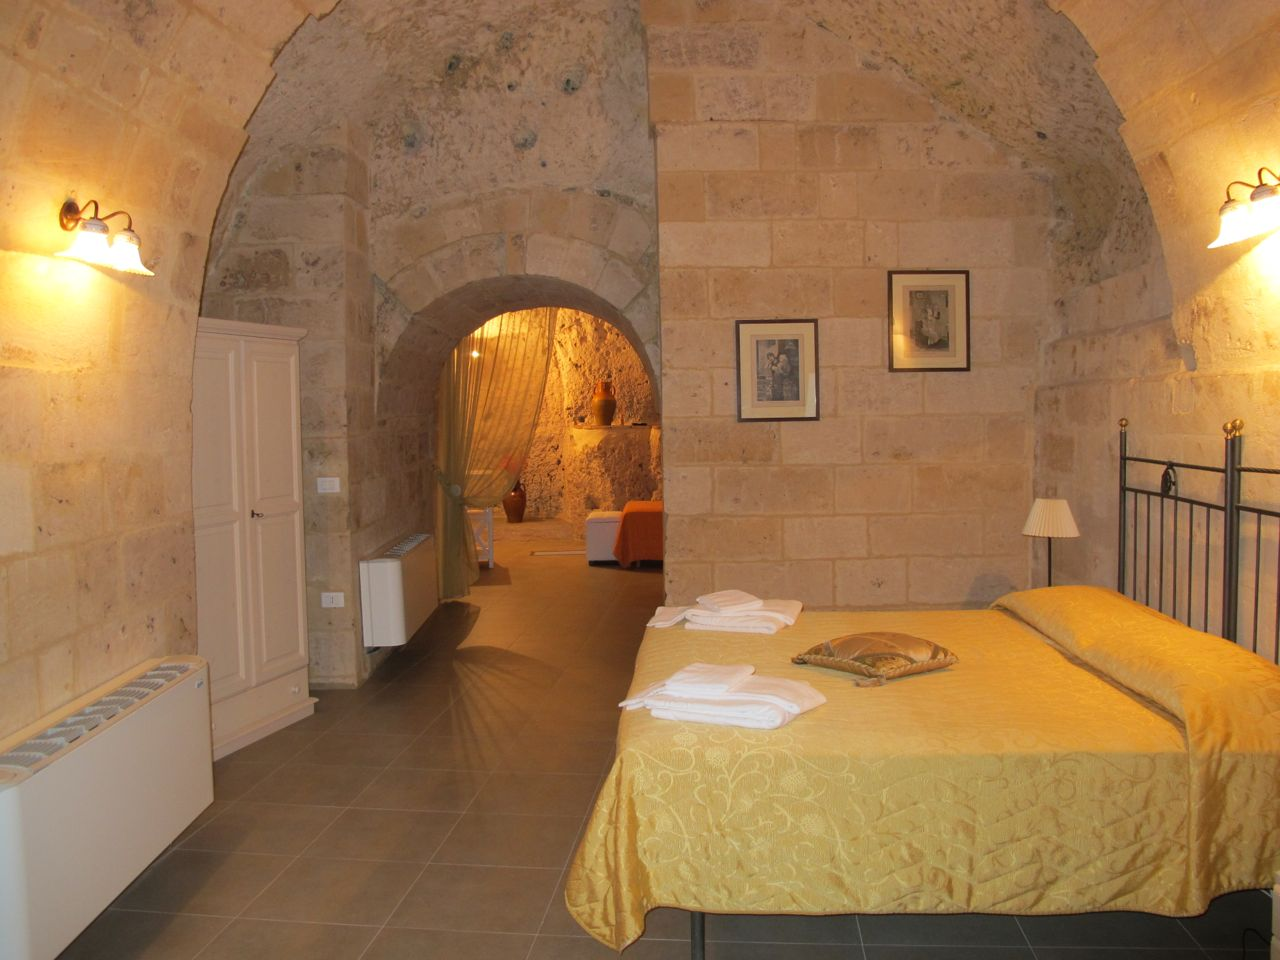 During Our Time There We Were Lucky To Stay In One Of The Renovated Cave Hotels